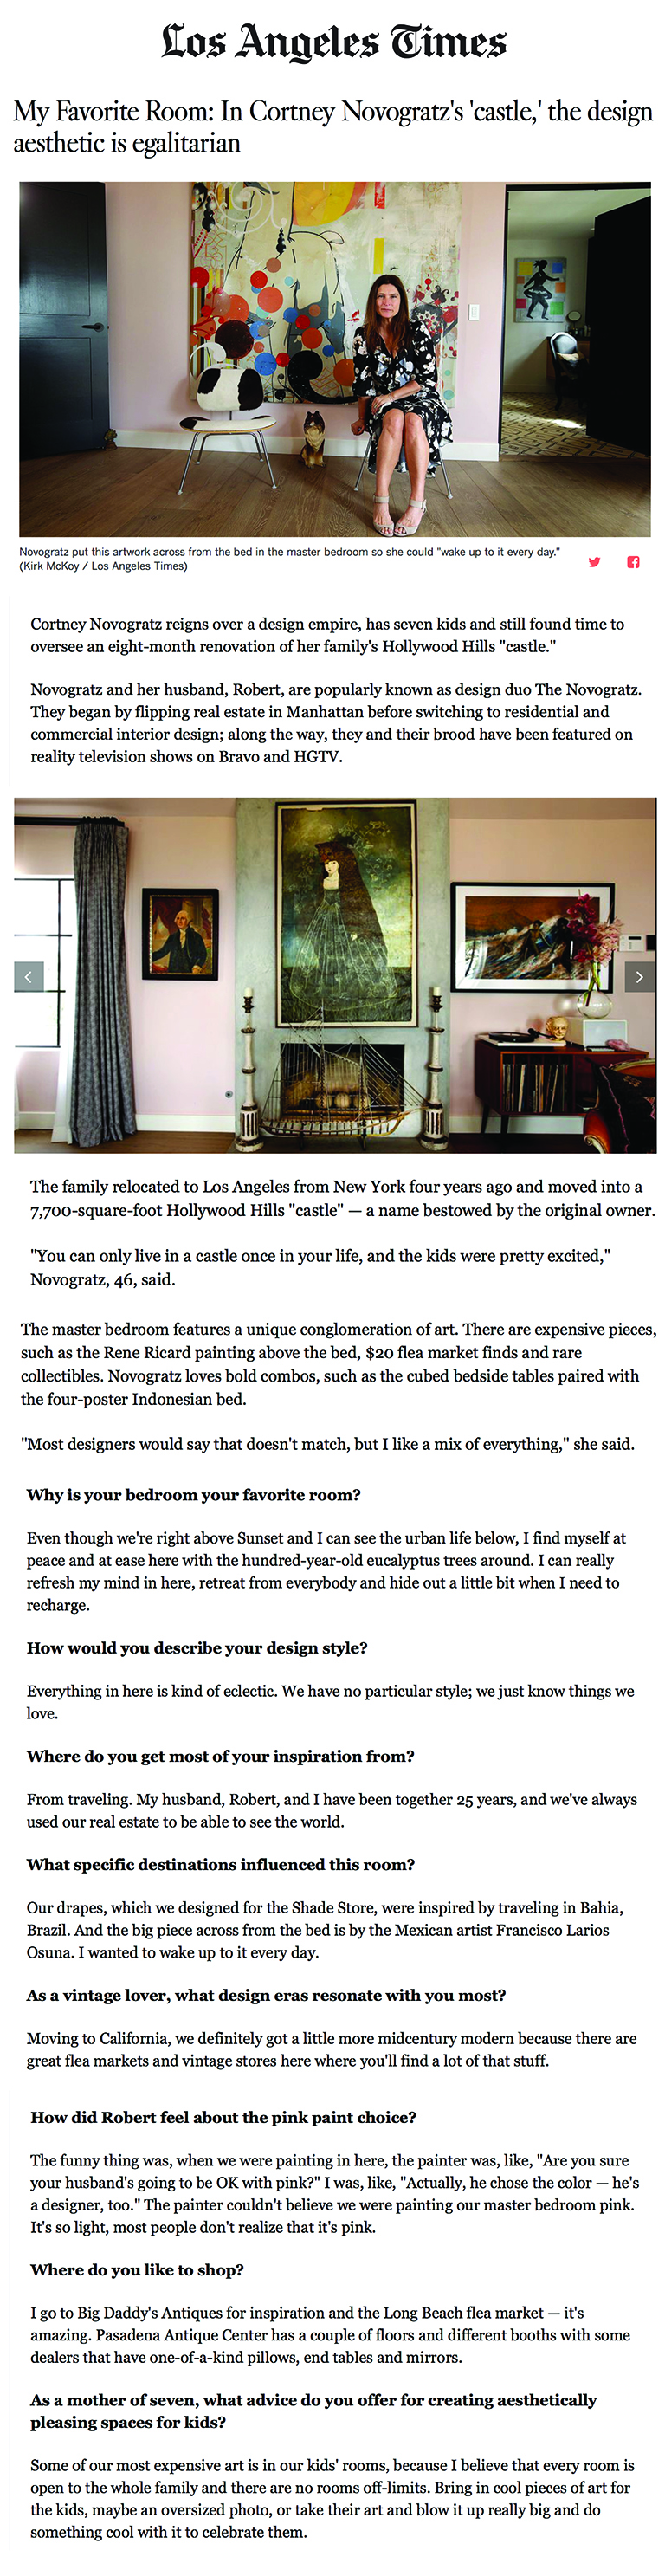 Los Angeles Times | My Favorite Room